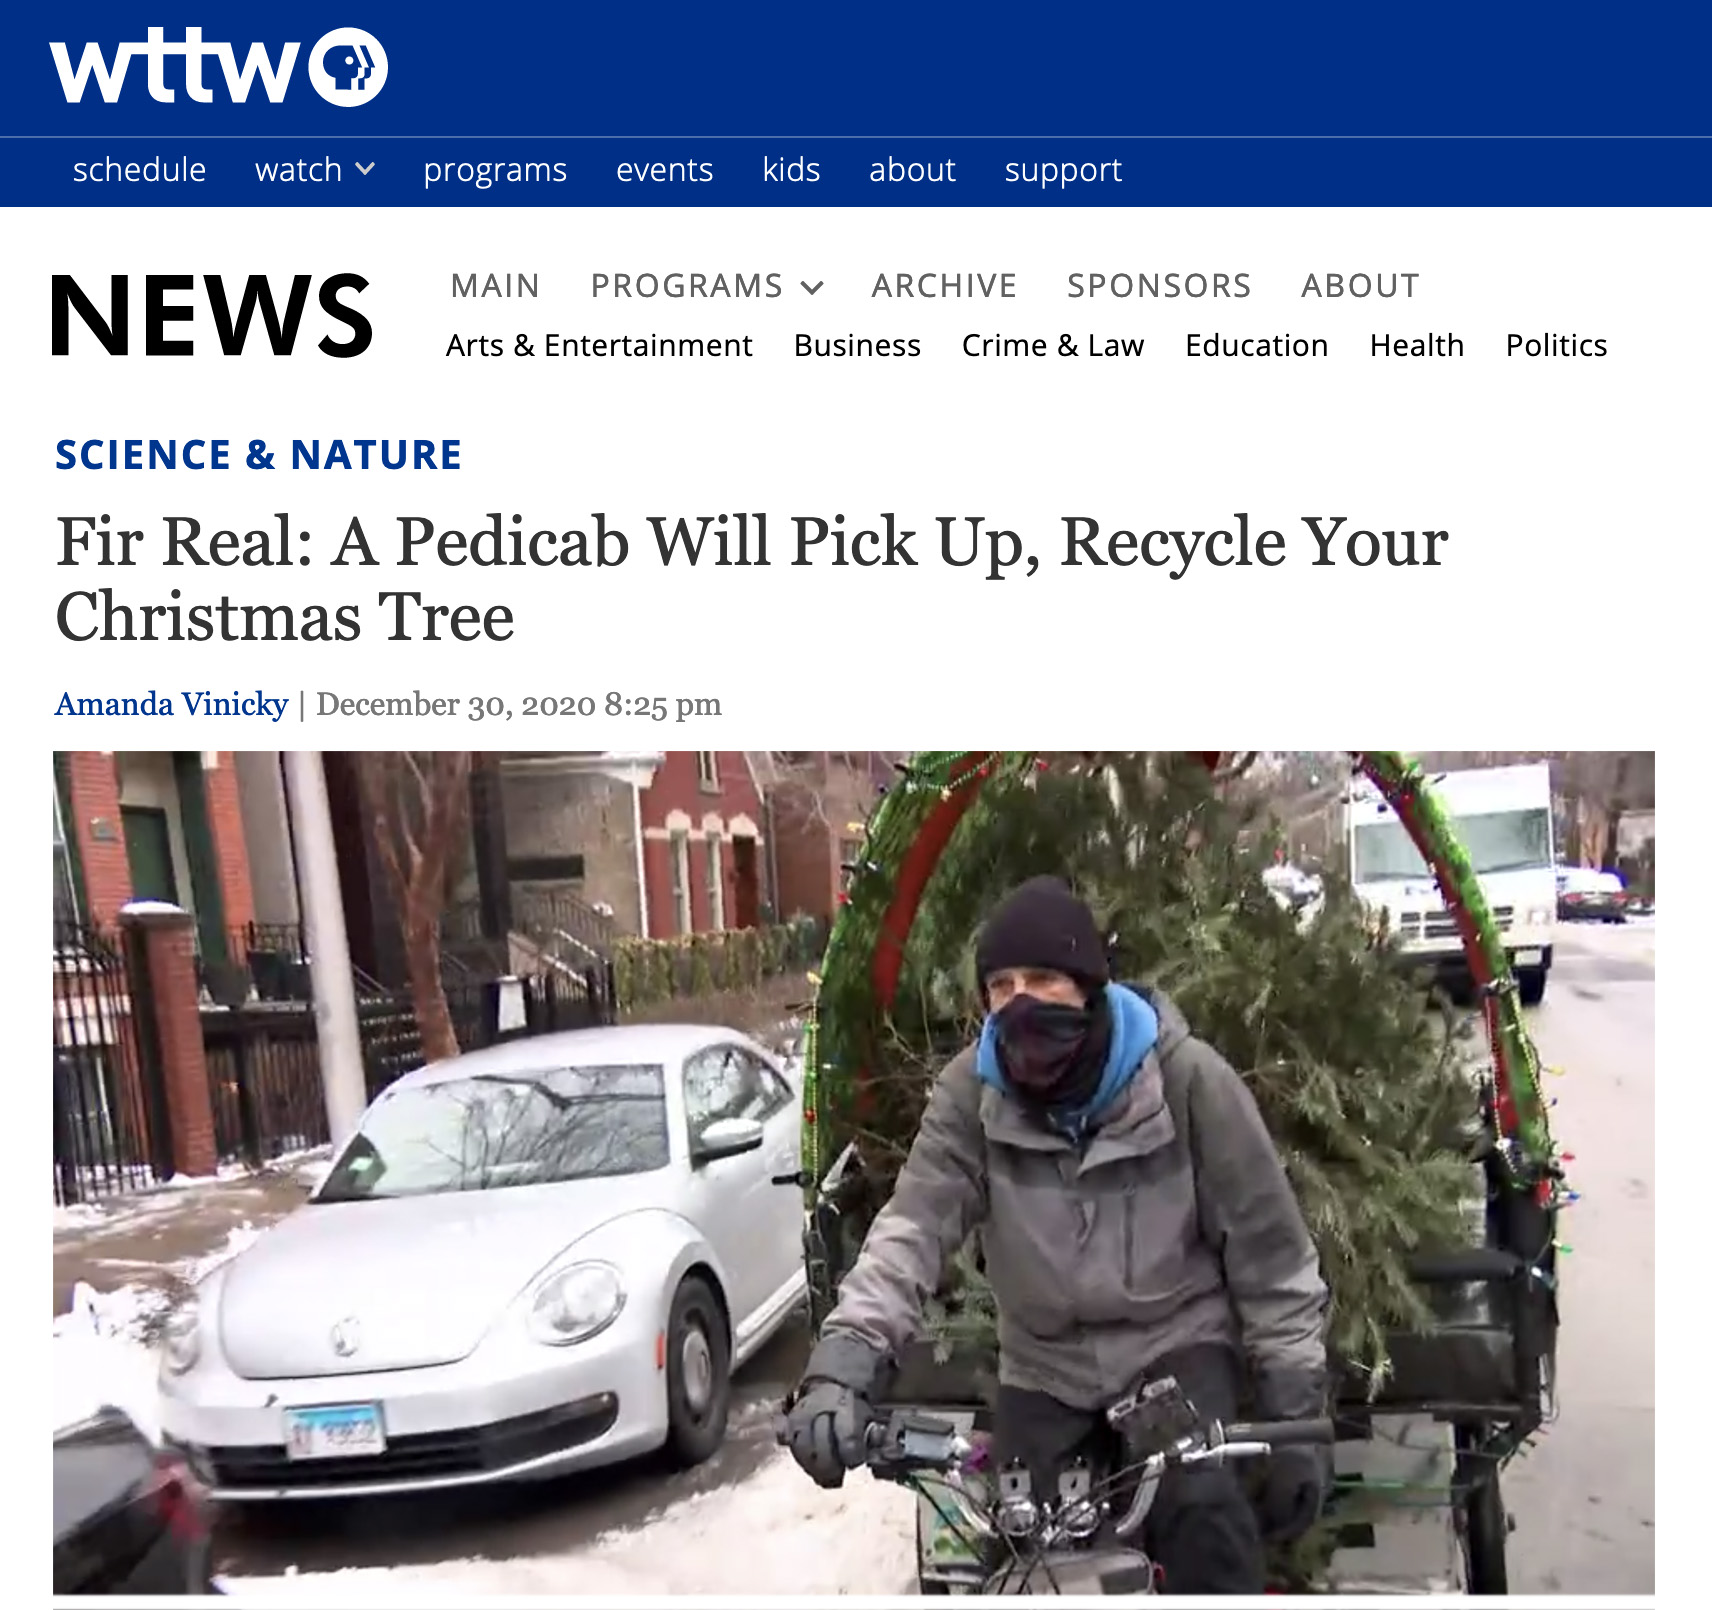 Fir Real: A Pedicab Will Pick Up, Recycle Your Christmas Tree